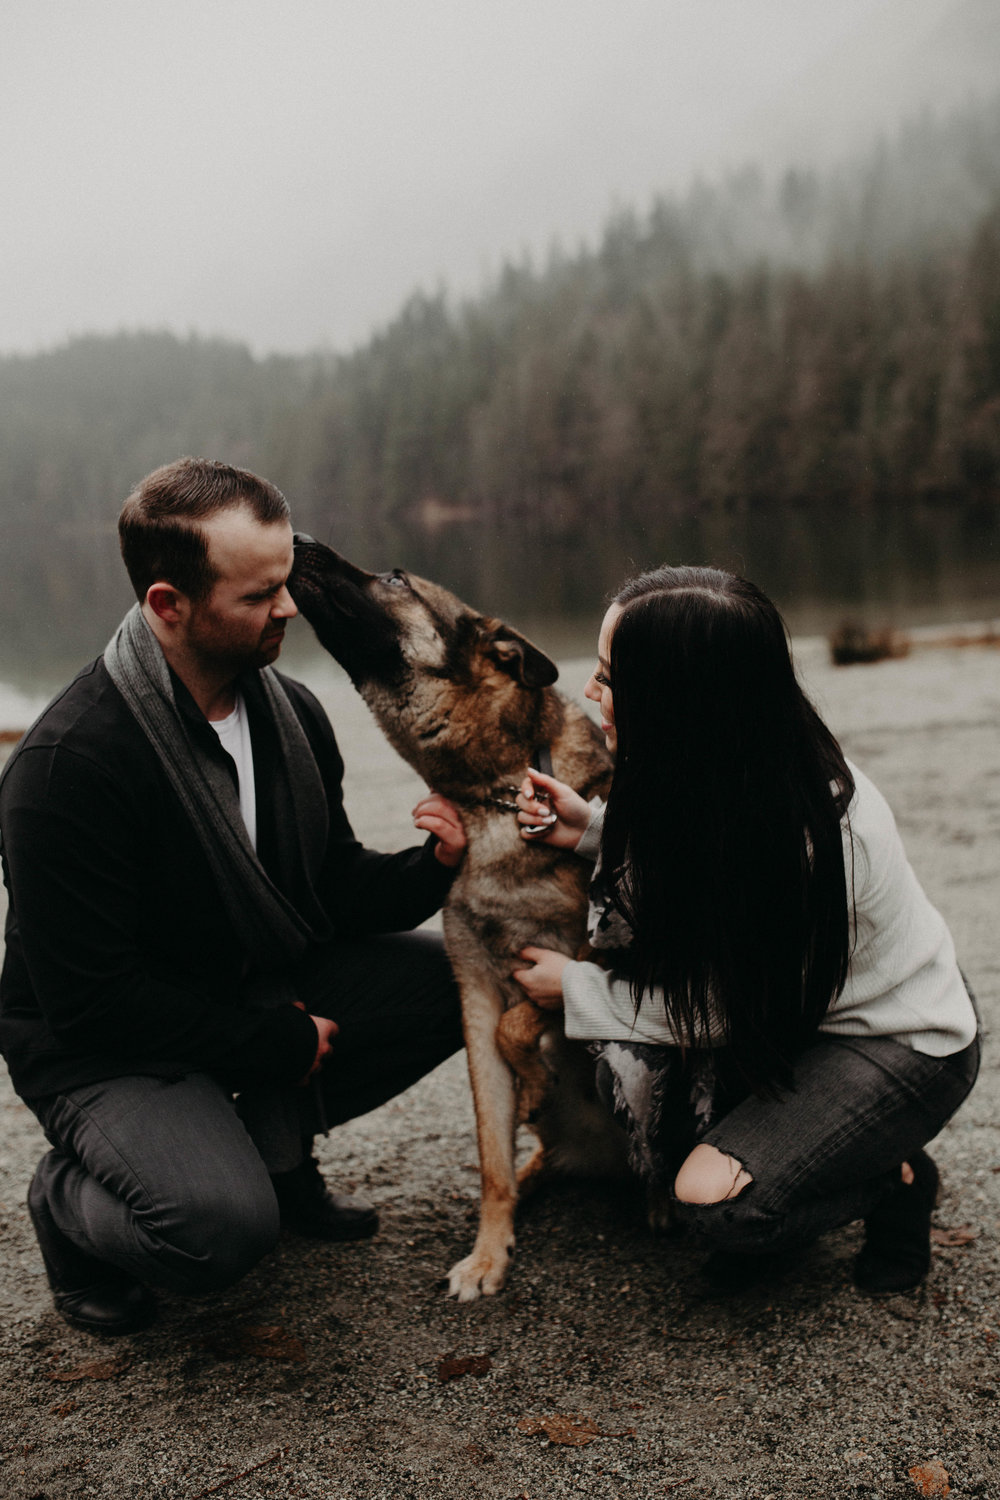 The McLachlans - BC Wedding Photographer - Buntzen lake engagements - Kurtis and Jessica -107.jpg